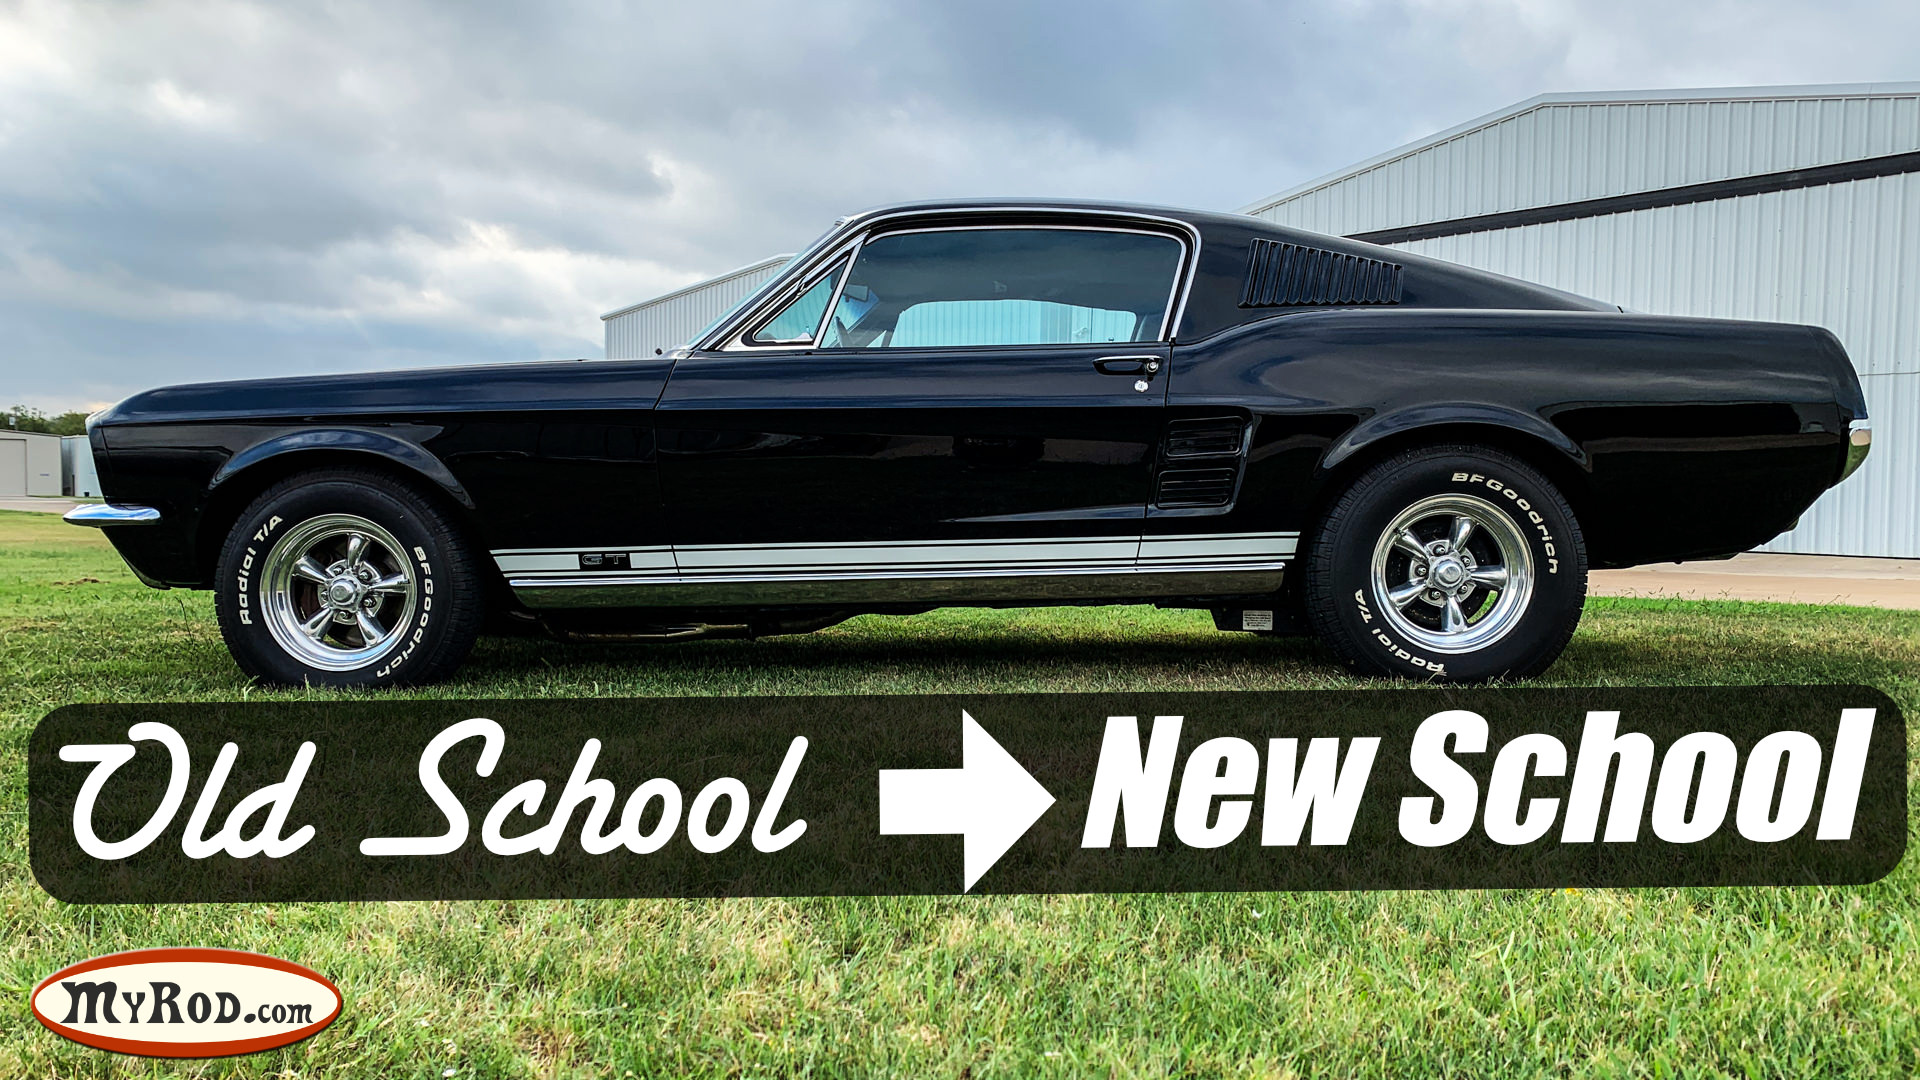 Mustang Upgrades – Old School to New School